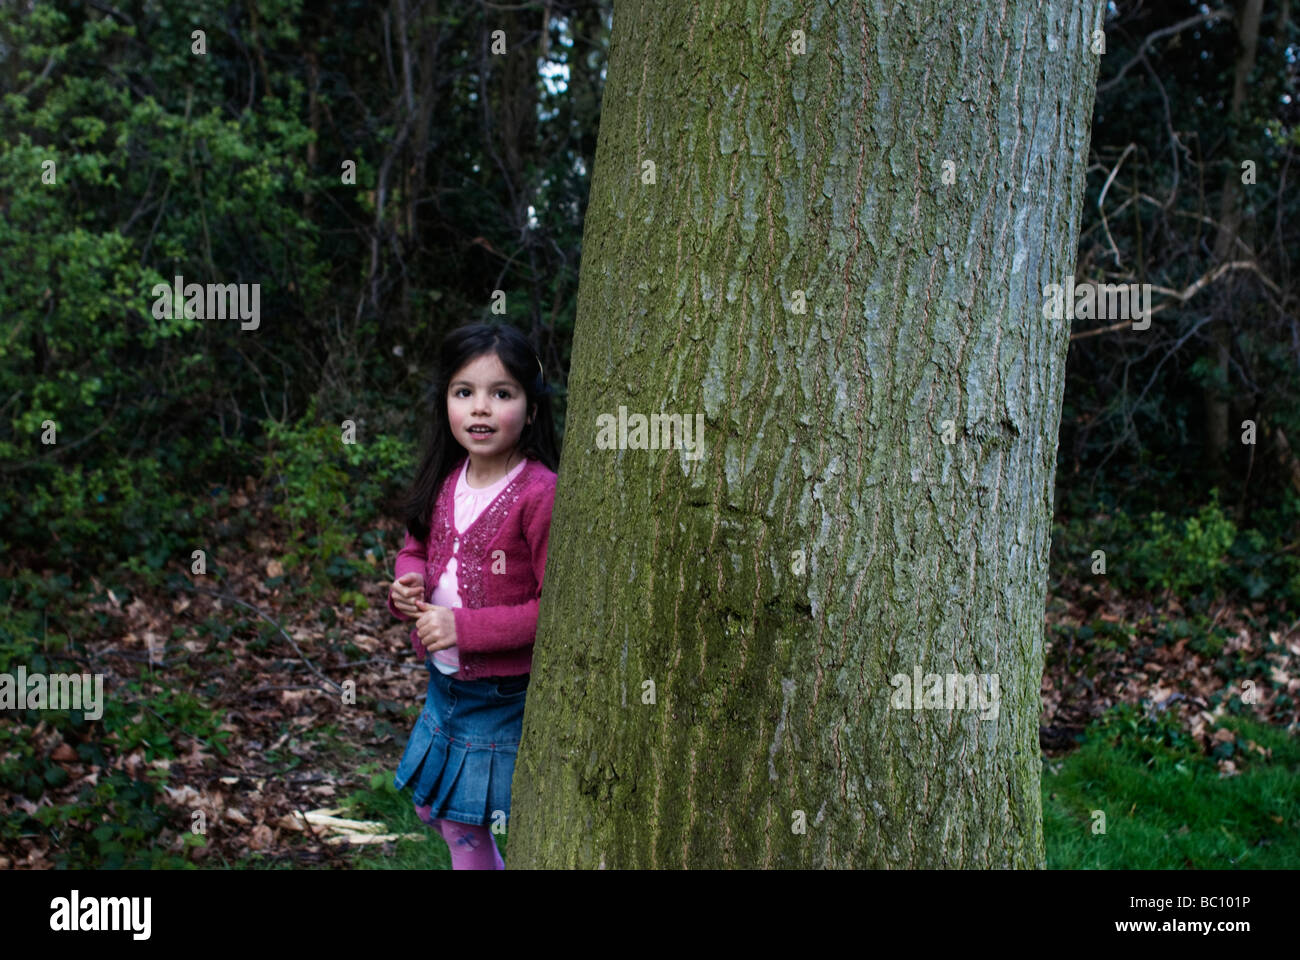 Child plays hide and seek - Stock Image